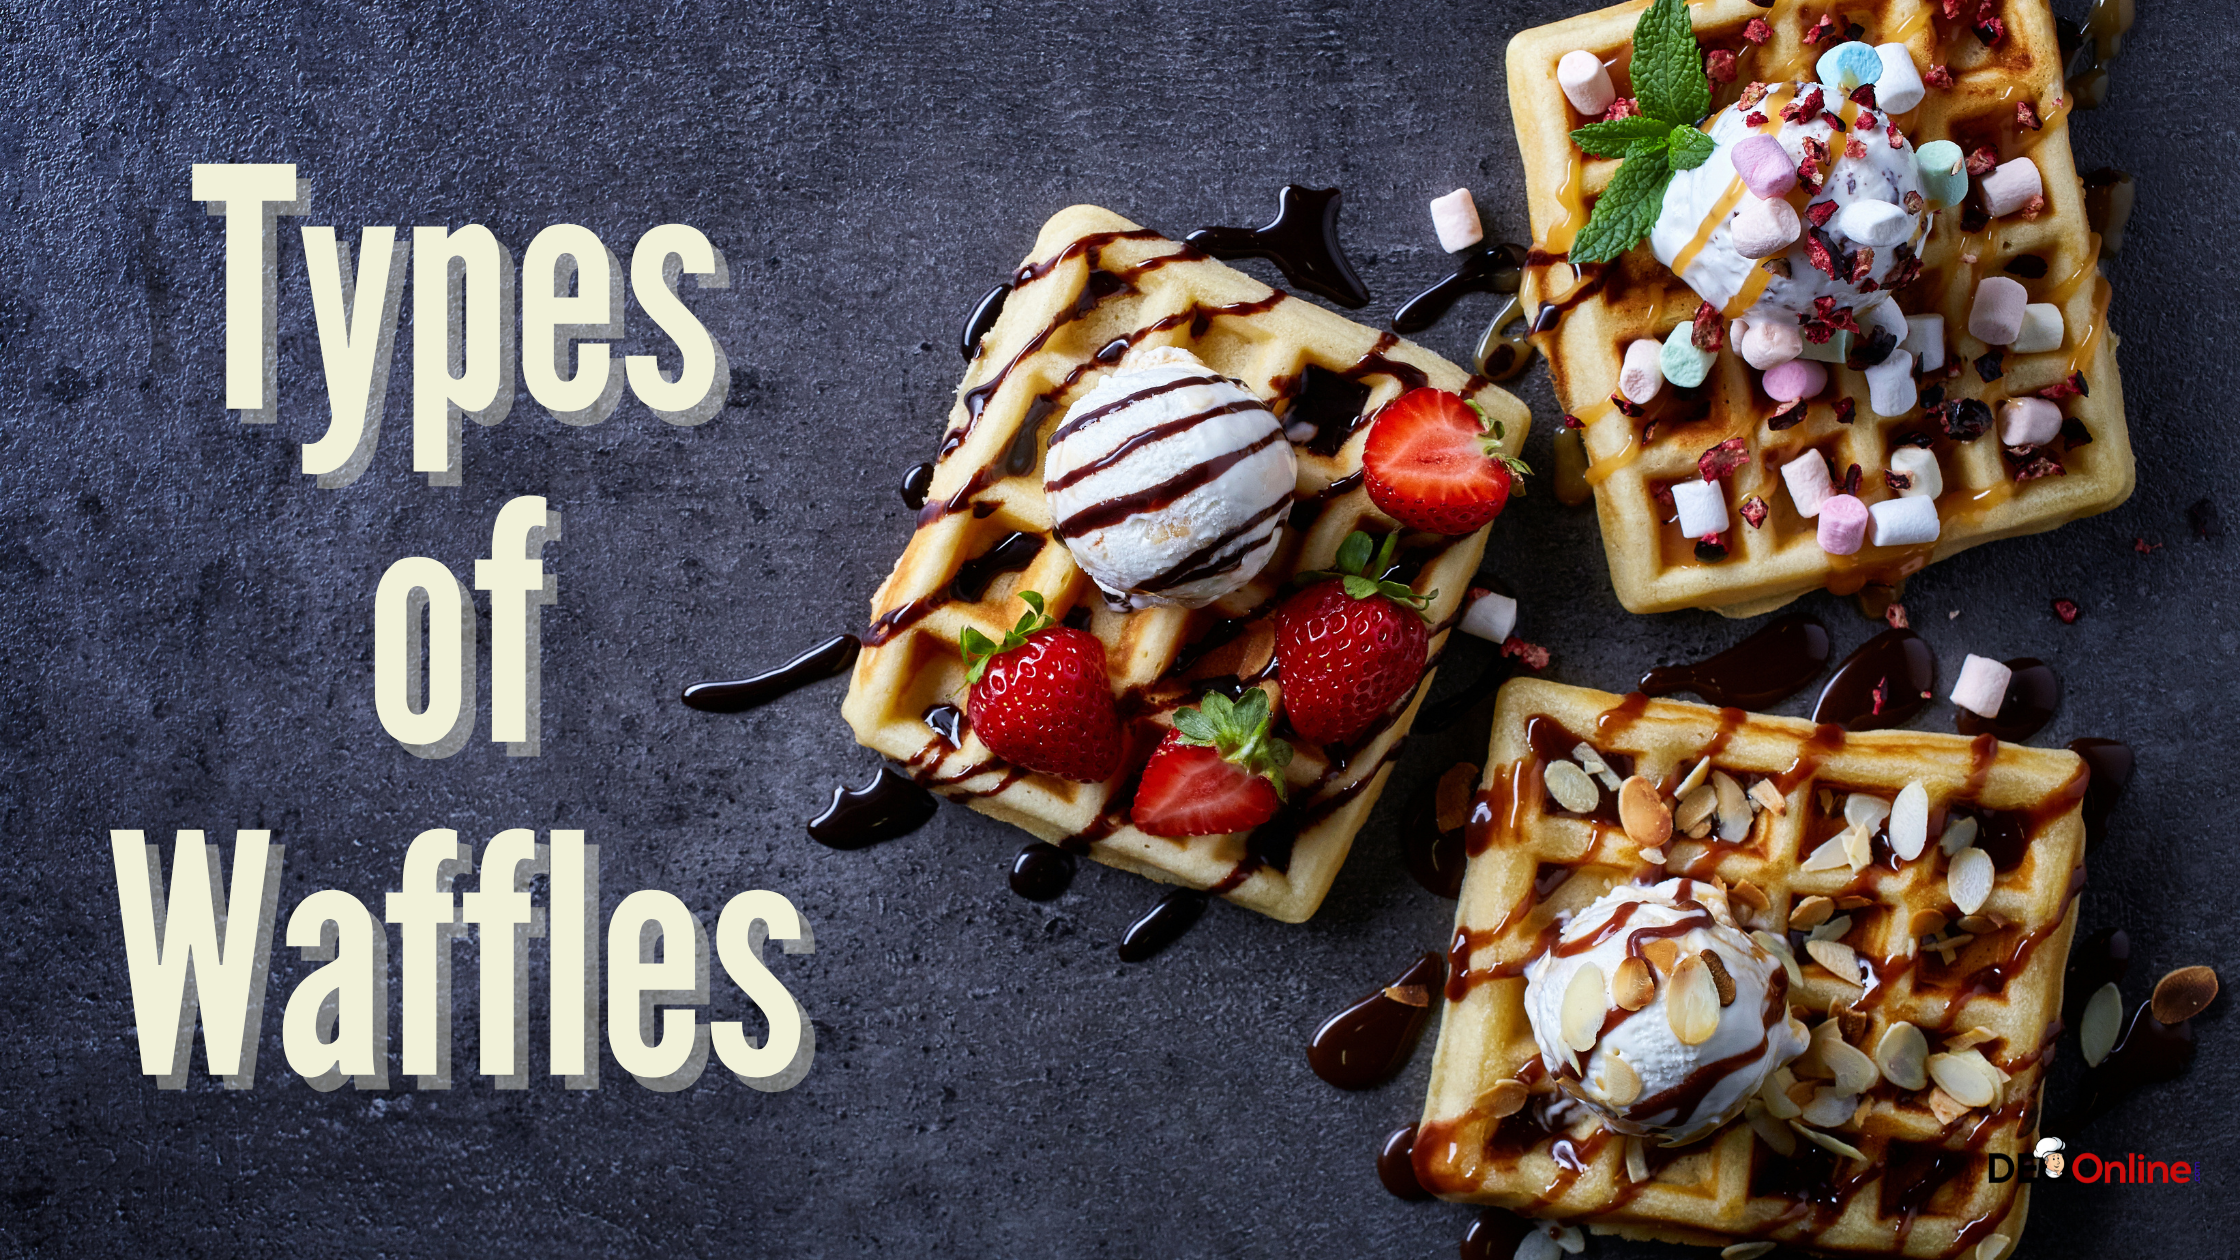 Types of Waffles